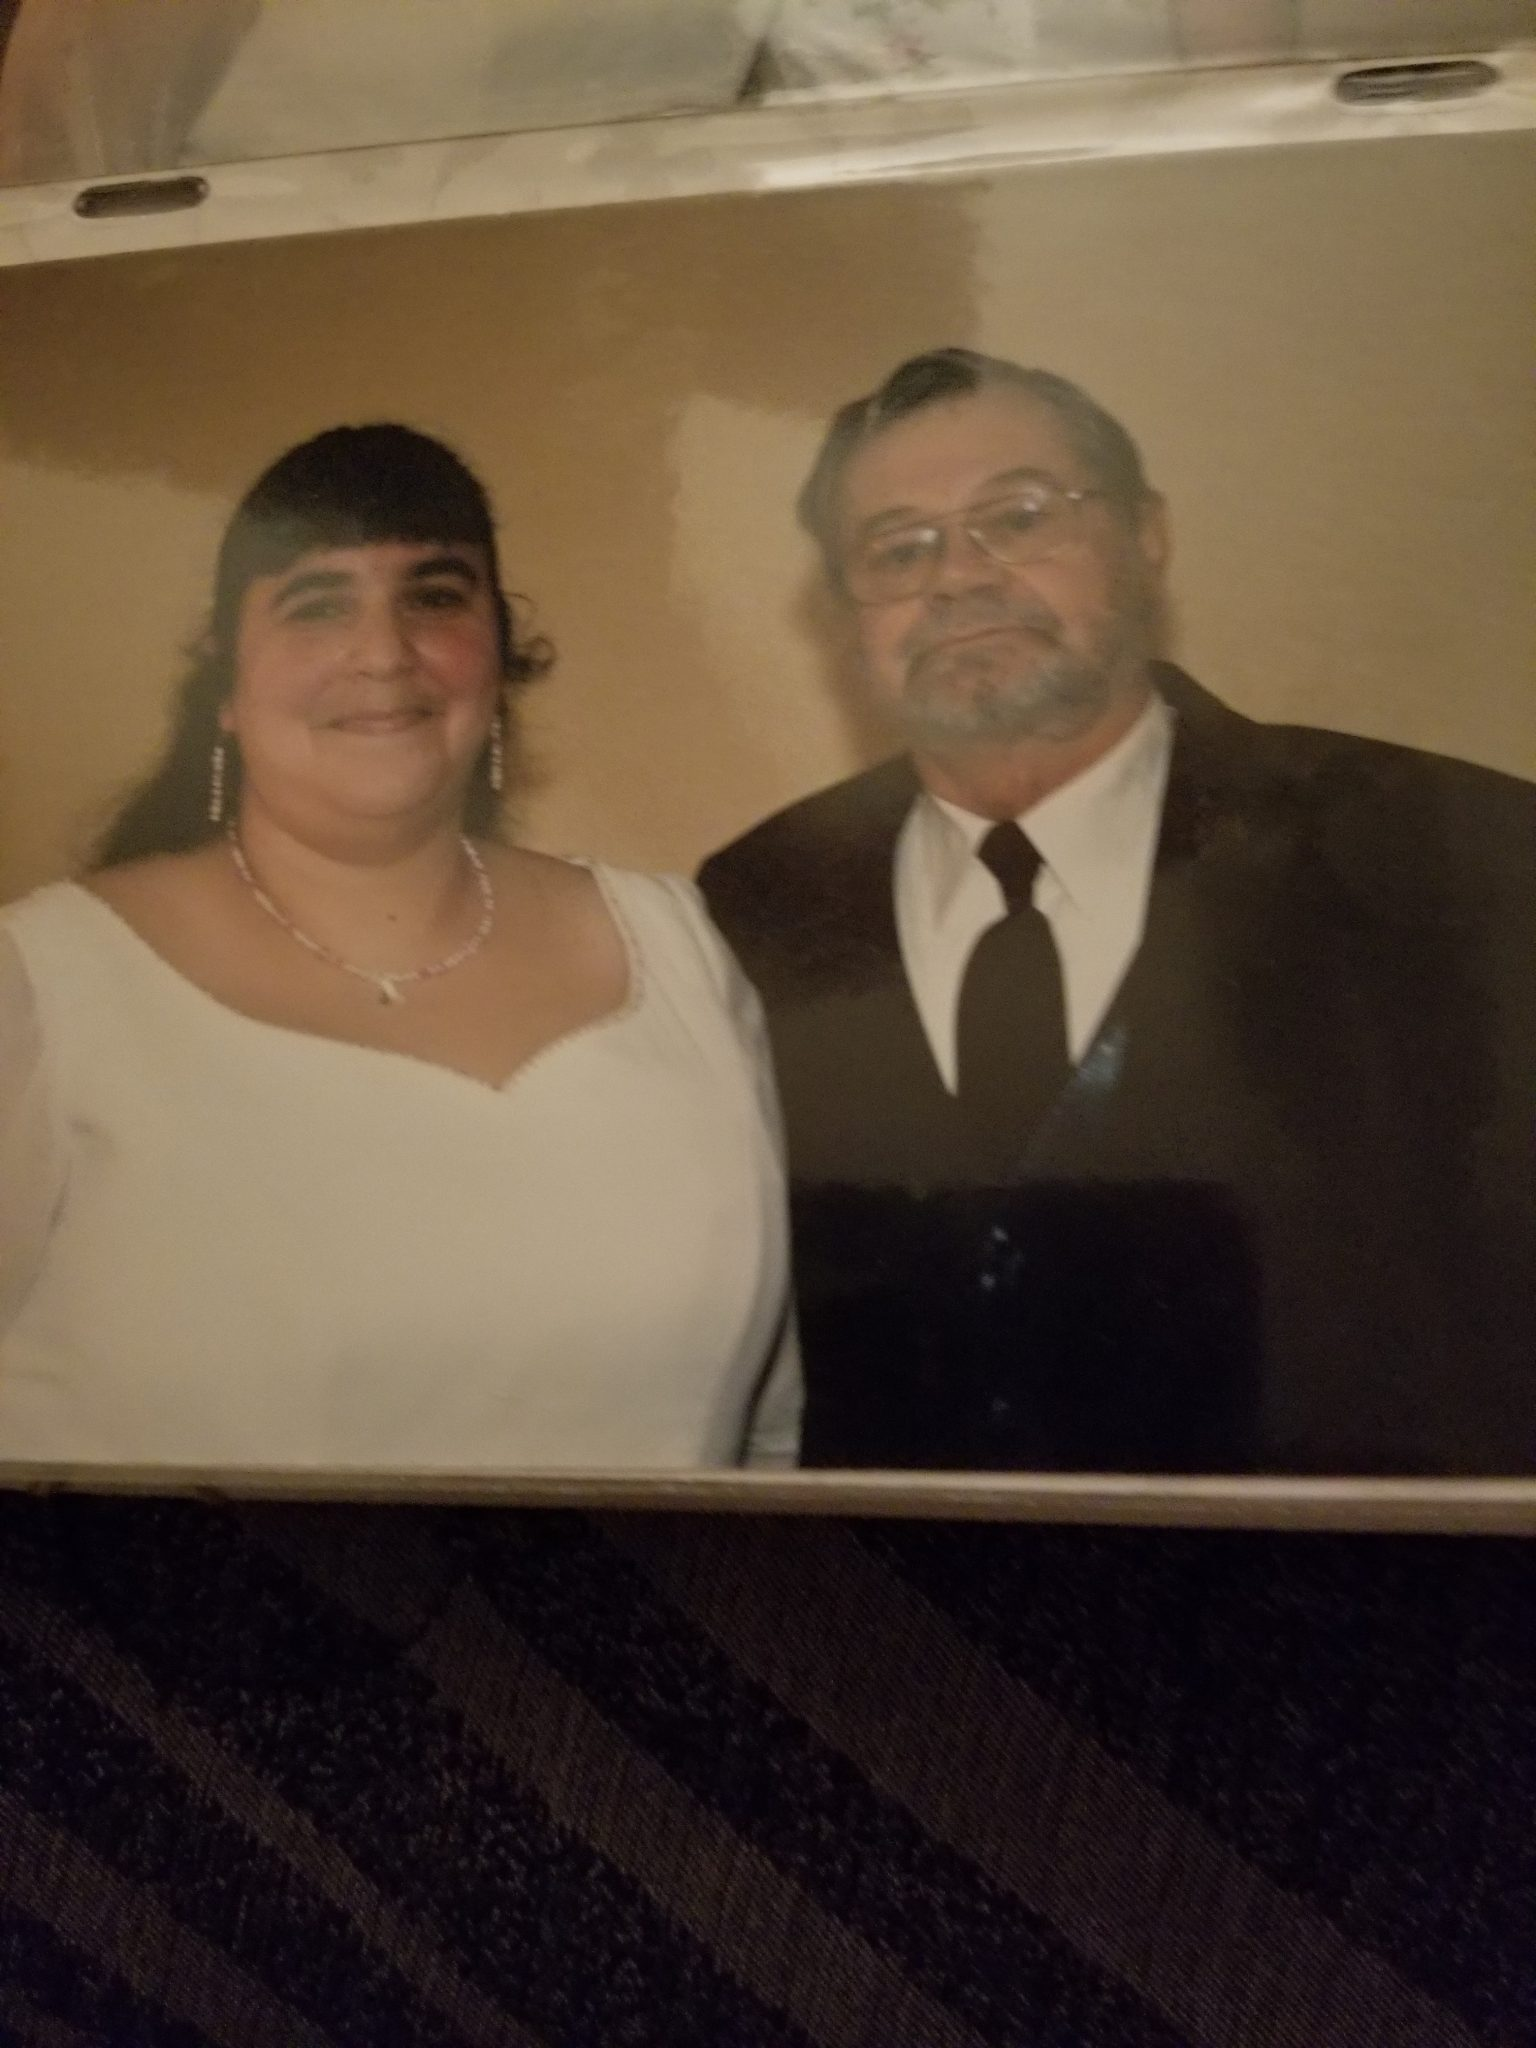 Me and dad on my wedding day